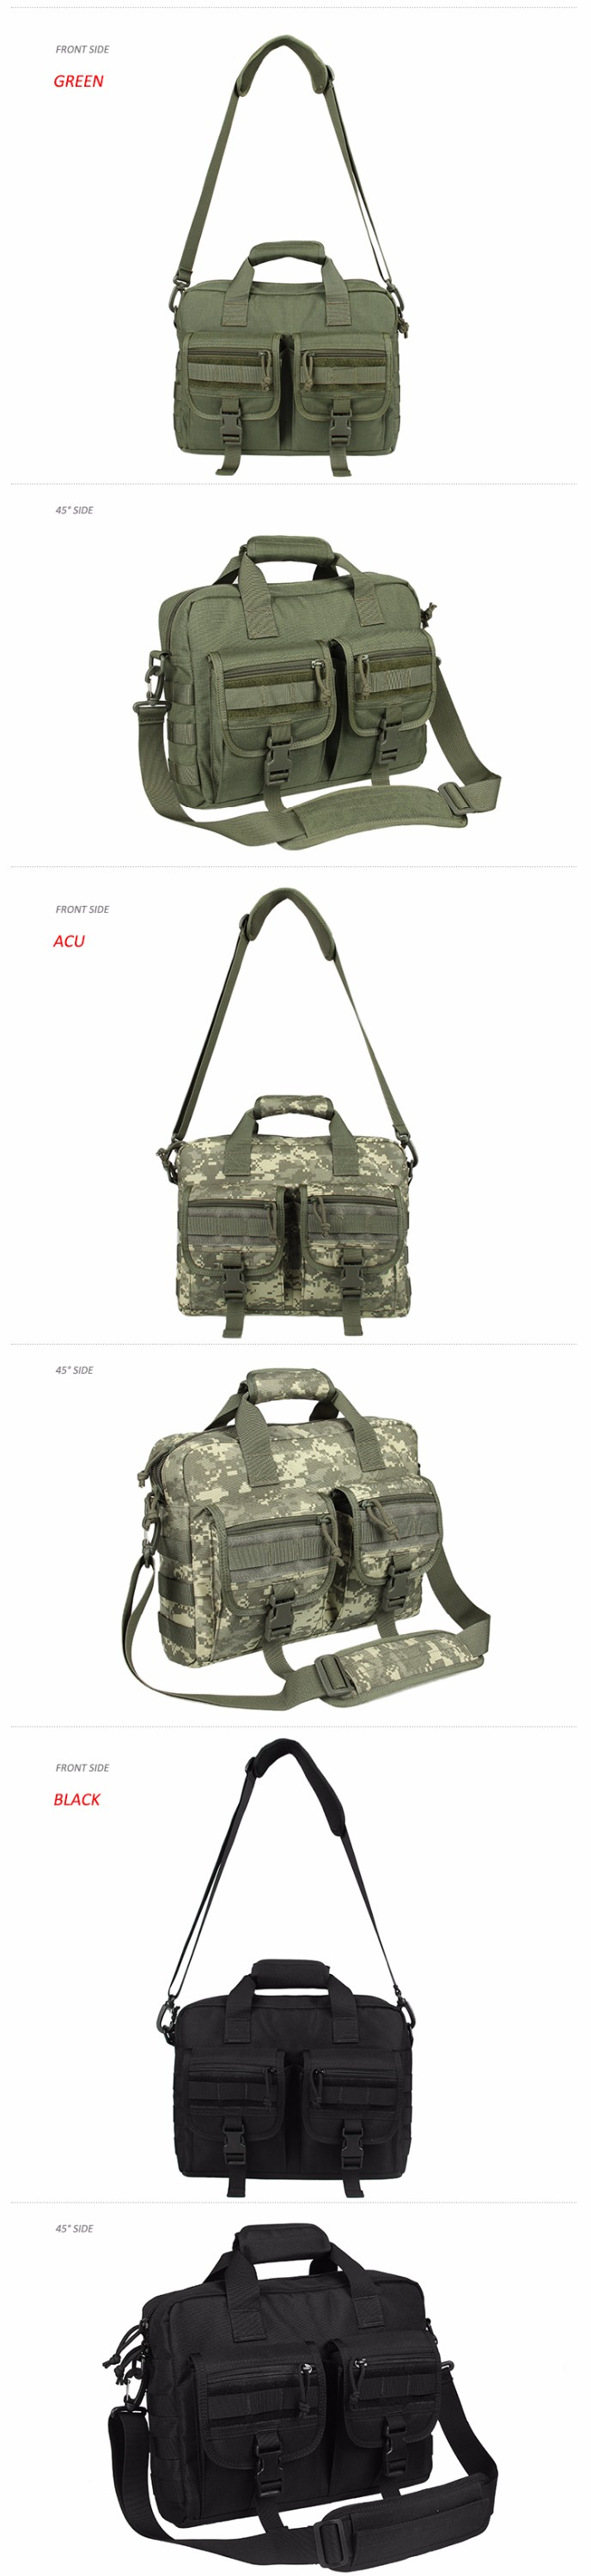 Tactical Outdoor Best Price Where To Buy Good Official Military Backpacks